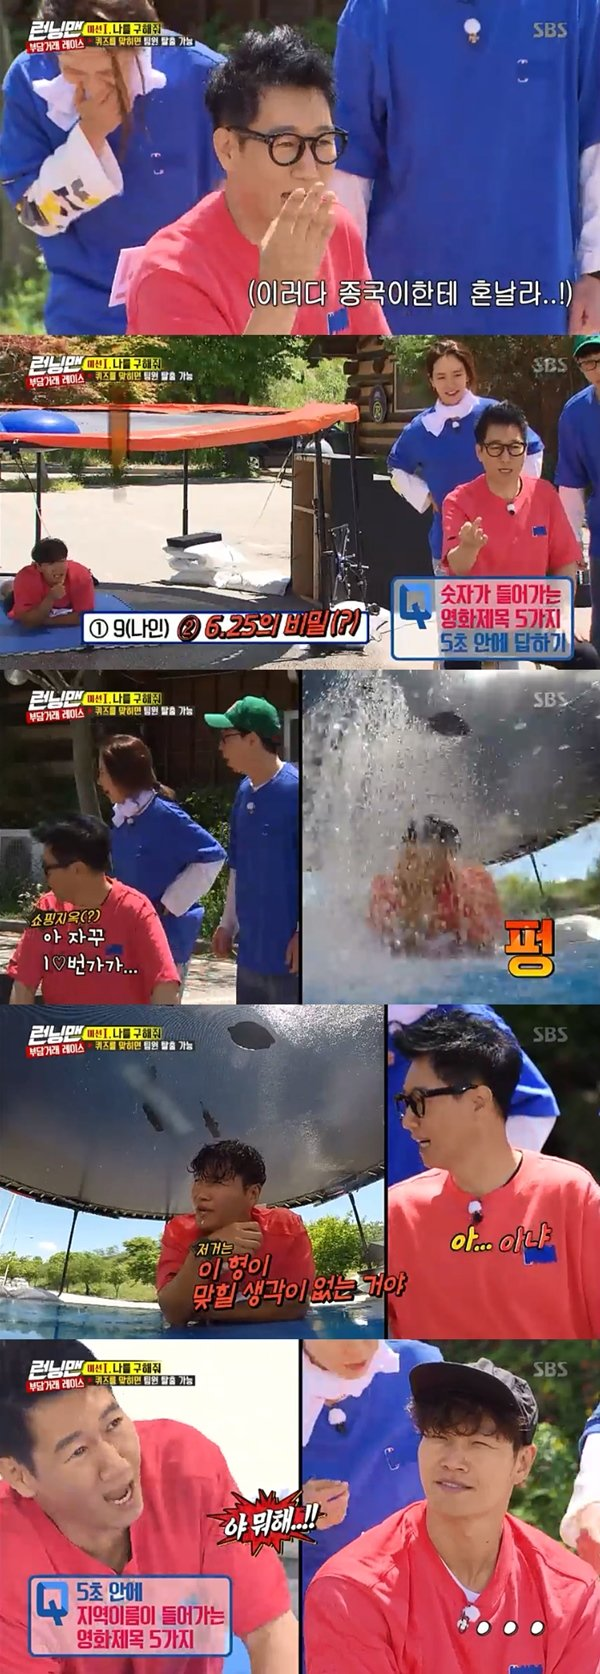 <p>2 days broadcast SBS Running Manin the Running Man members domestic Love Without Love (Live at Summer Vacation/08 - Run to the tool projectready to appear.</p><p>The four team tournament way speed quiz to progress. One&Yang and more as a team and Kim Jong-kook&JI Suk Jin team facing was. Kim Jong-vitamin water balloon down to get down when there is a stone with this problem, never hit the wind on the water light contact the Baptist to the right Kim Jong-kook.</p><p>Kim Jong-kook is off to the quiz at random. Know the answer even some of these do not meet that. Support the analysis with a why not right simply becauseyou angrily correct answer informed. Kim Jong-kook is in the end the problem right not, the seat is water was right.</p>